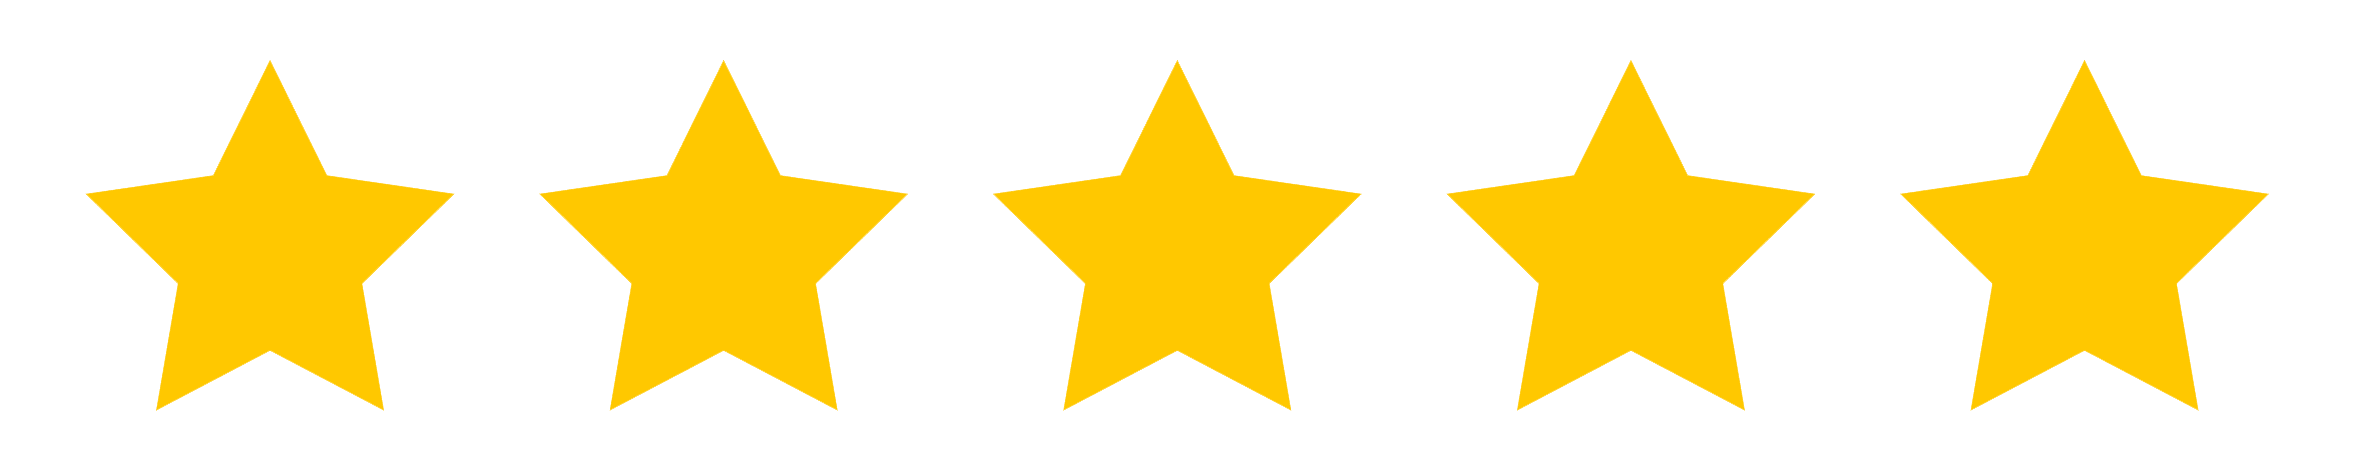 Reviews star rating from Diane C. for A-1 Self Storage in San Jose, California